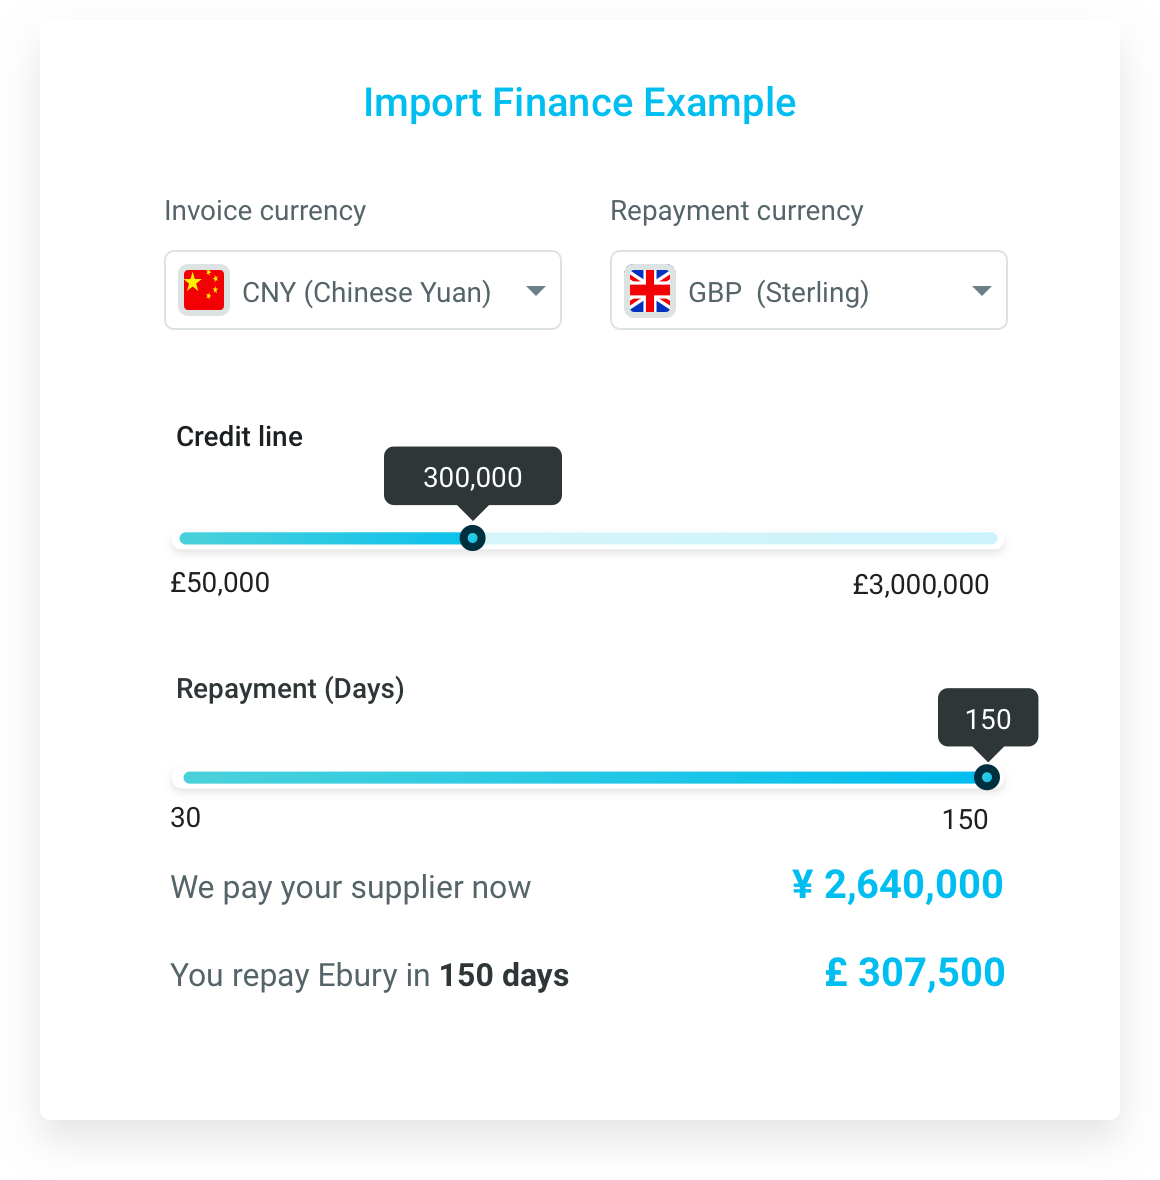 Import finance example